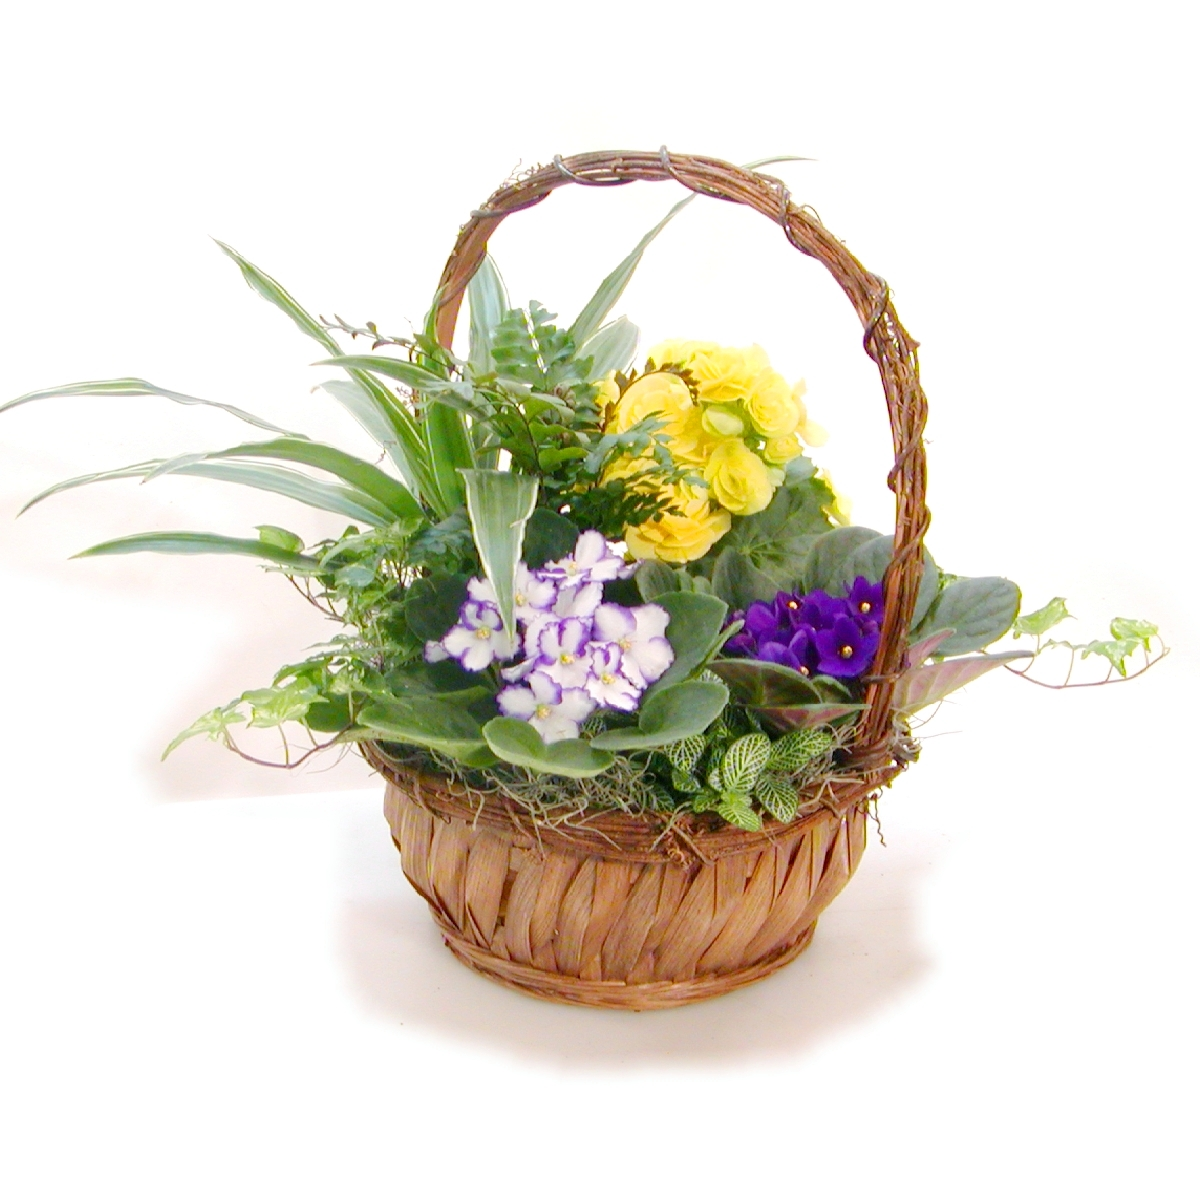 Images Of Flower Baskets : Medium flower basket